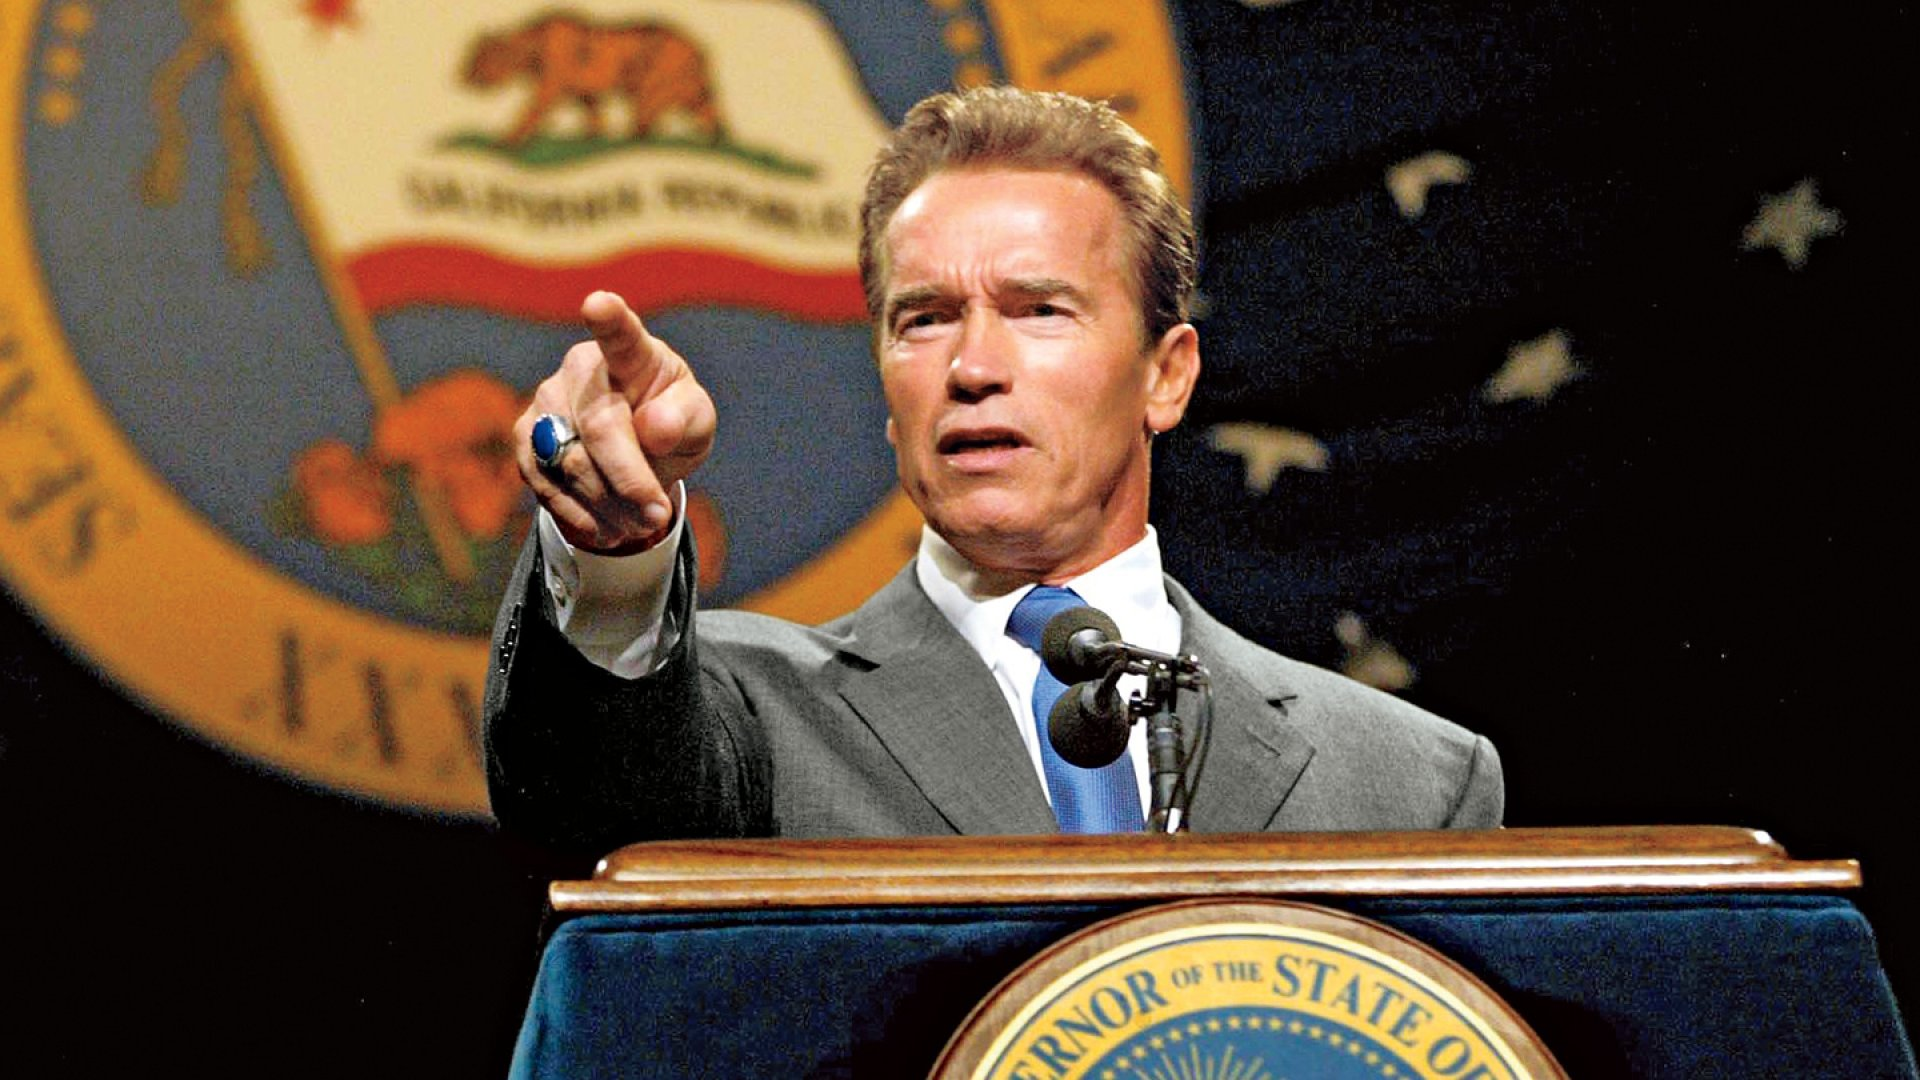 Will he be terminated? Governor Schwarzenegger hopes business-savvy voters will recall that he reformed the workers' comp system.